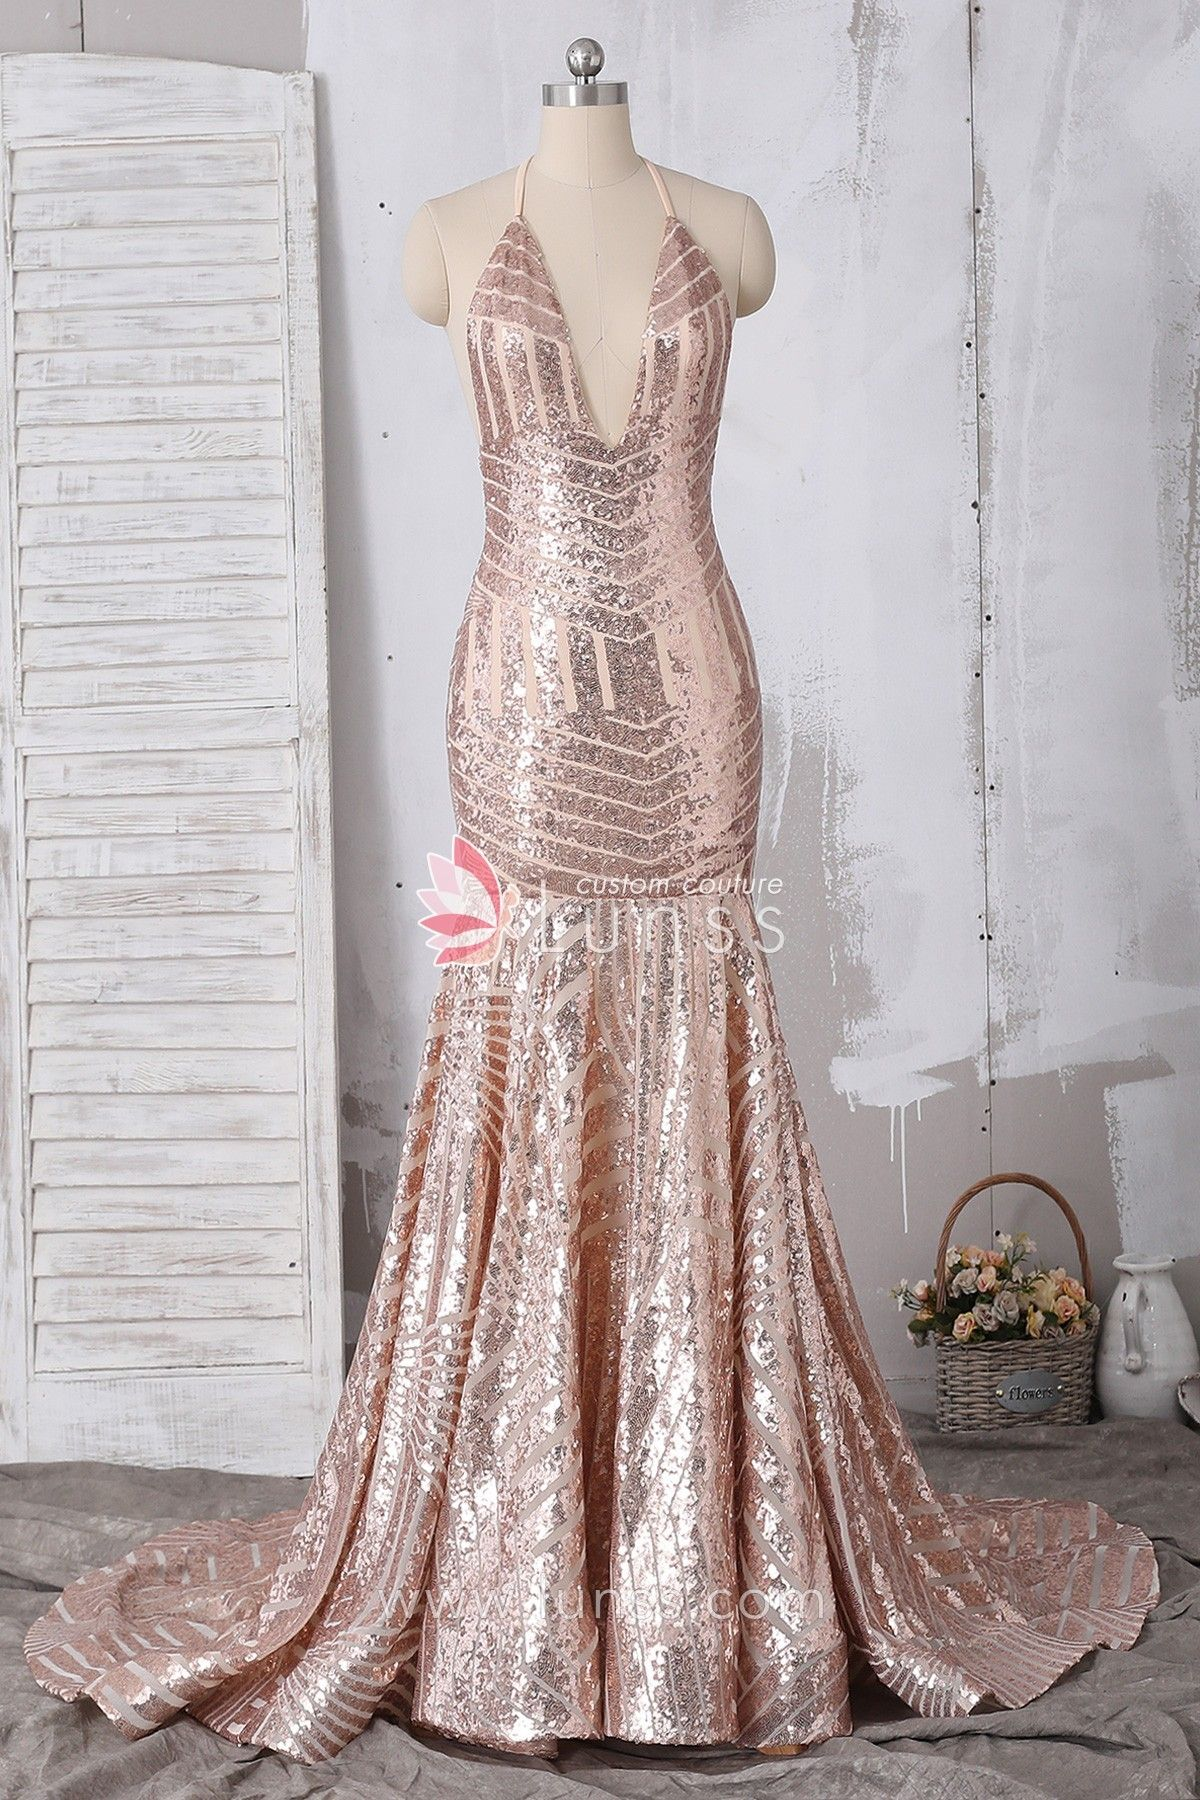 ecf78de5cc6 Rose Gold Halter Plunging Long Pattern Sequin Mermaid Prom Dress ...